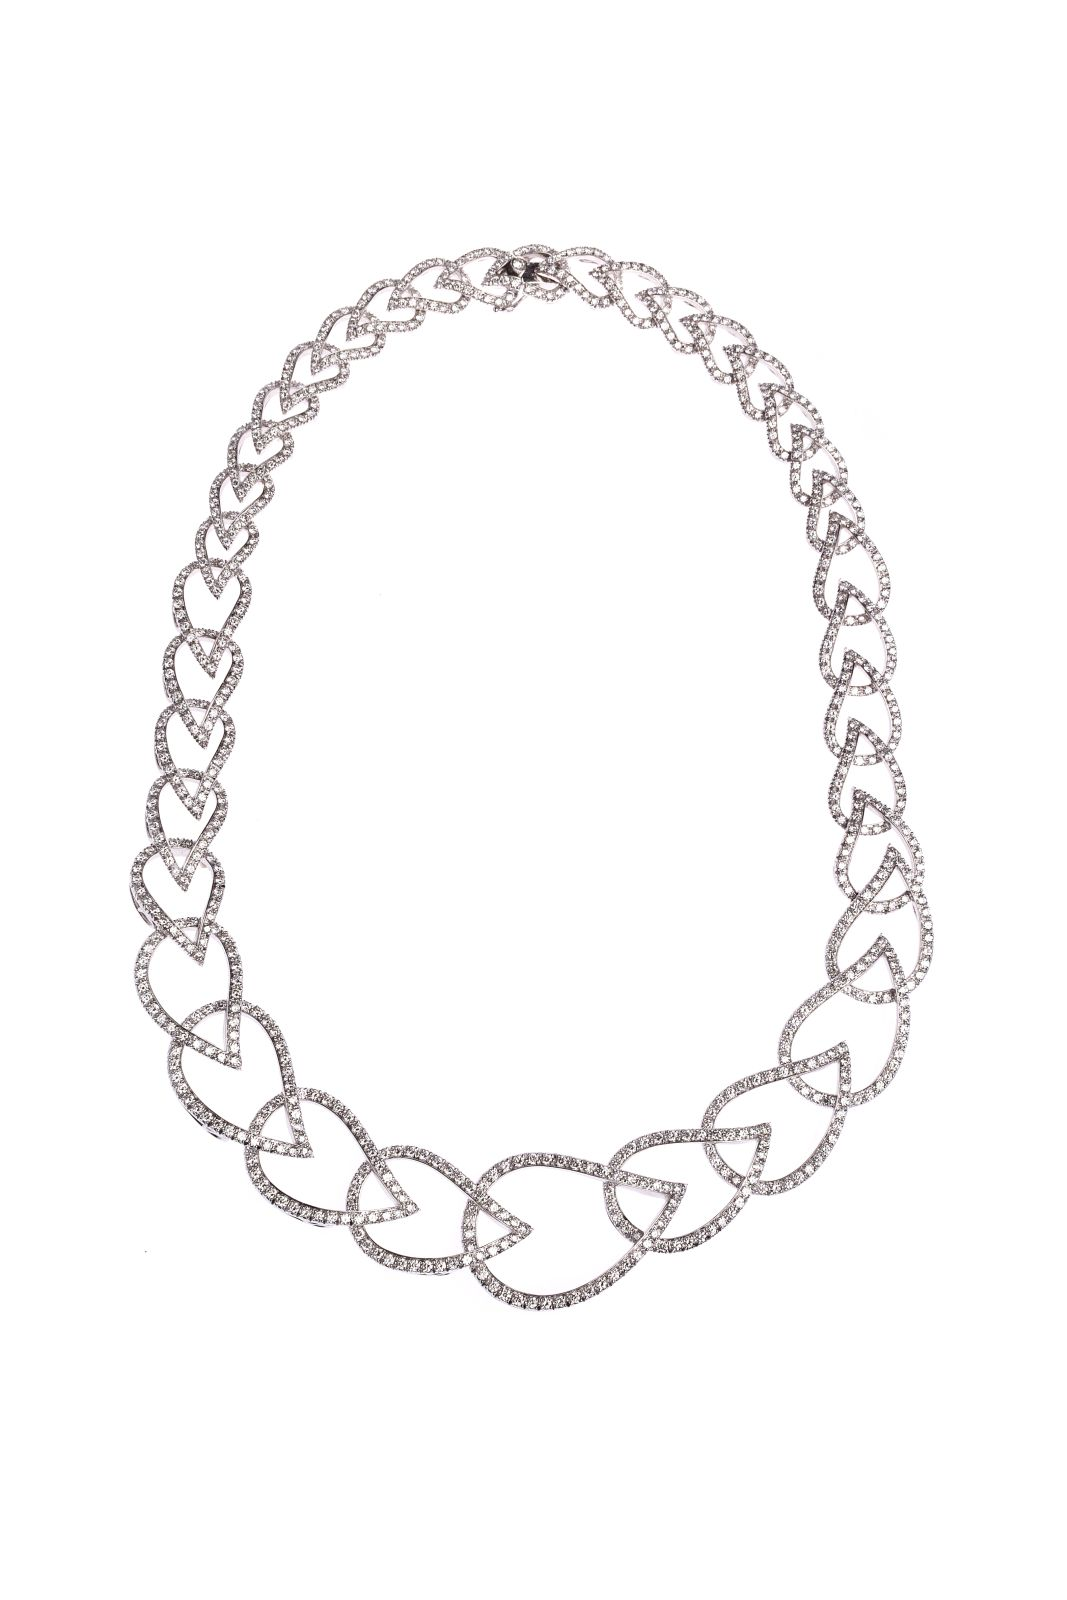 #107 Necklace with diamonds | Tropfen Collier Image